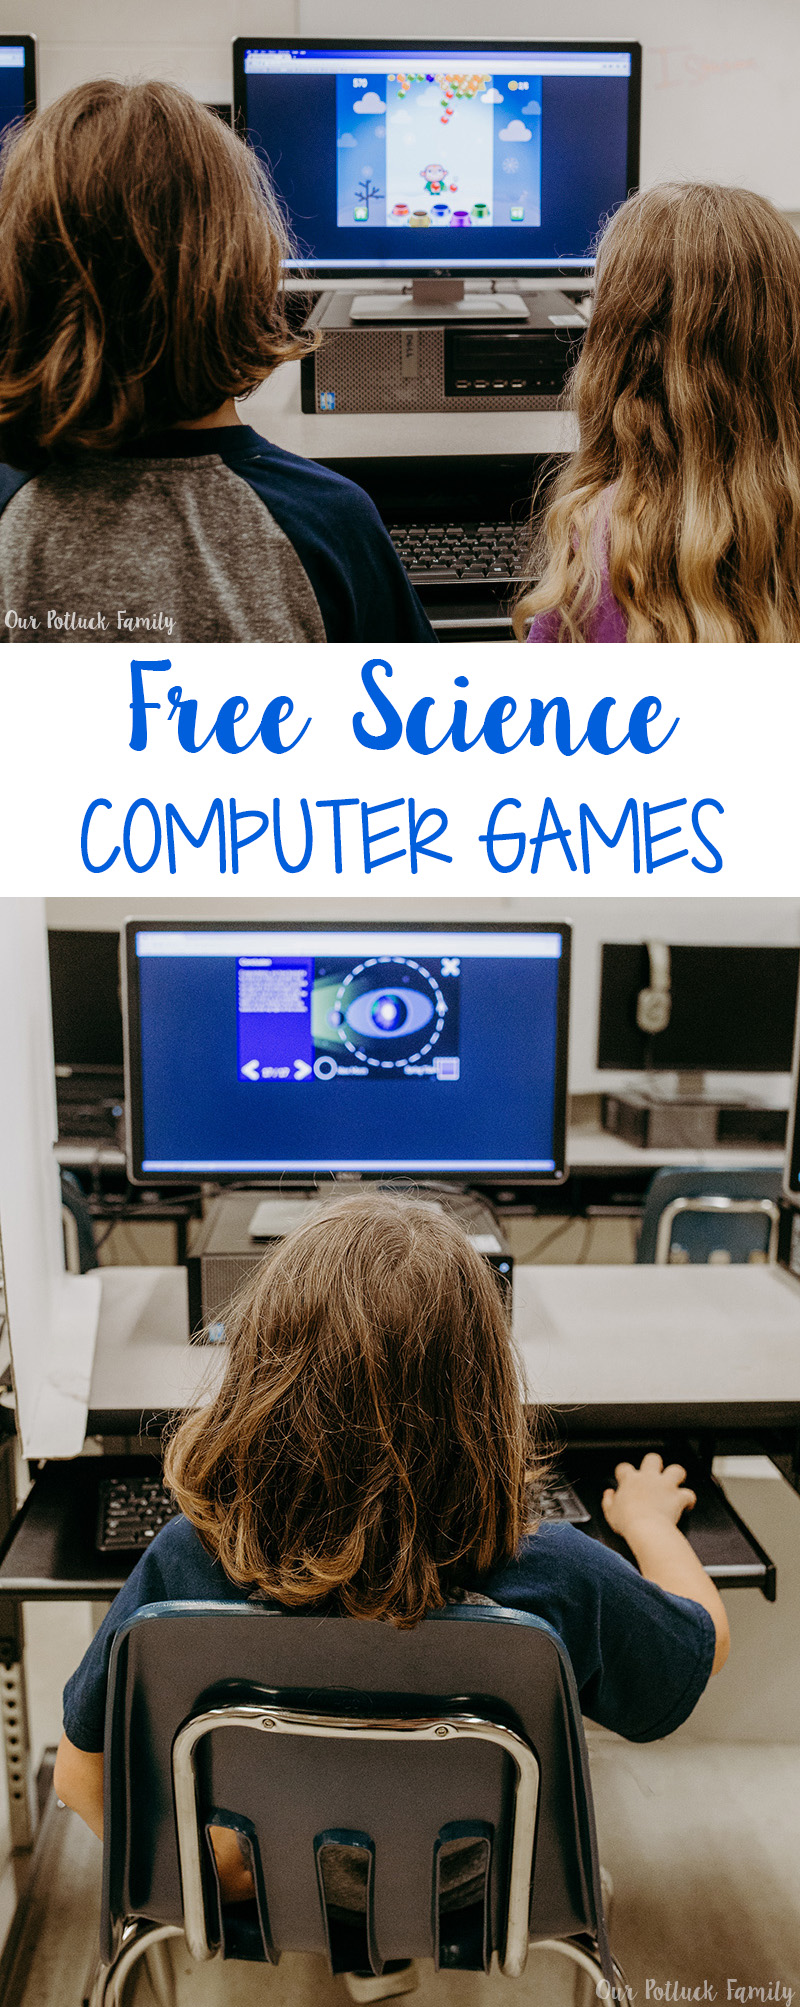 Free Science Computer Games